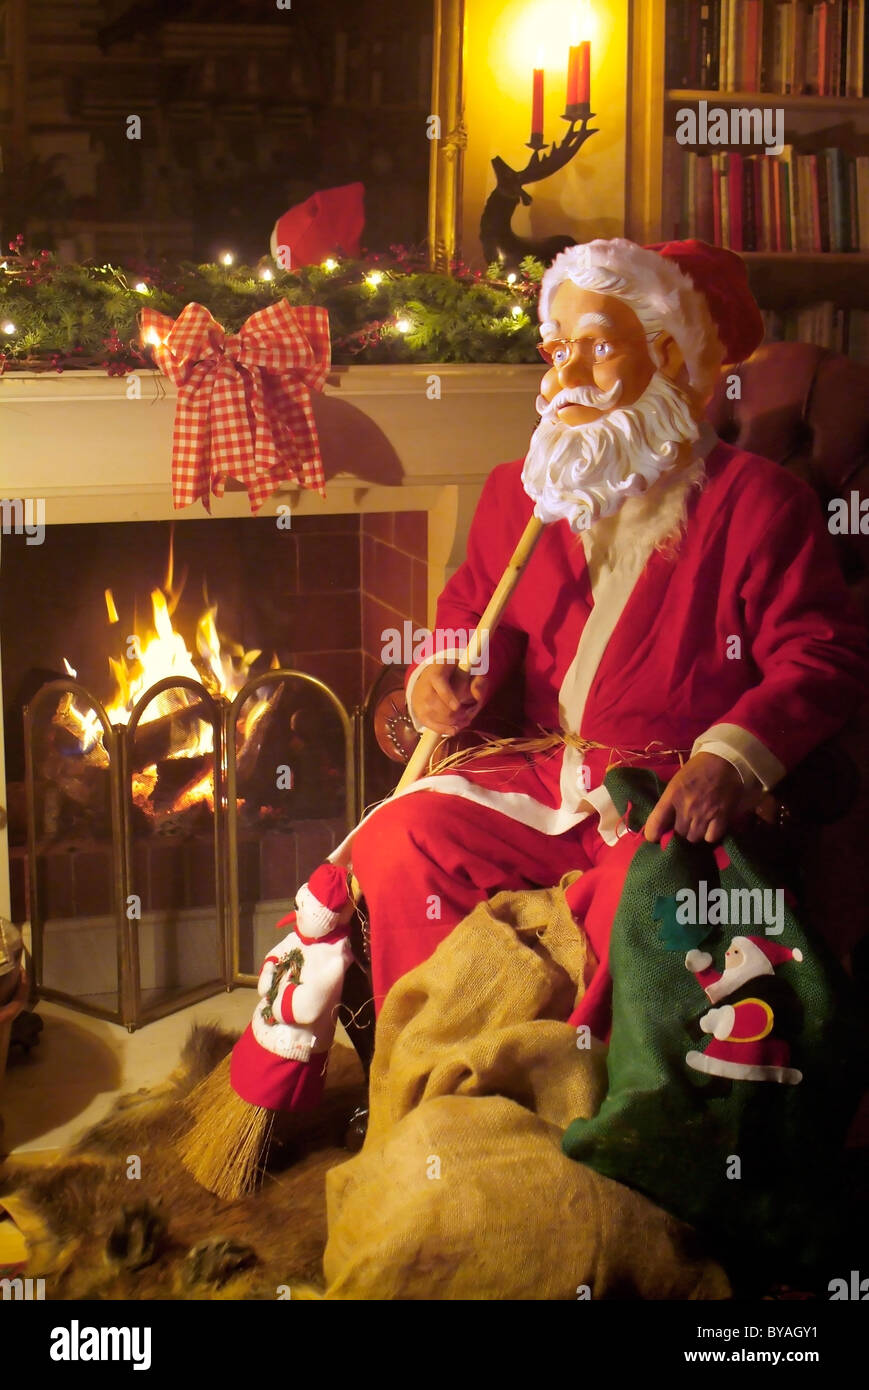 Santa Claus figure sitting in front of fireplace Stock Photo ...